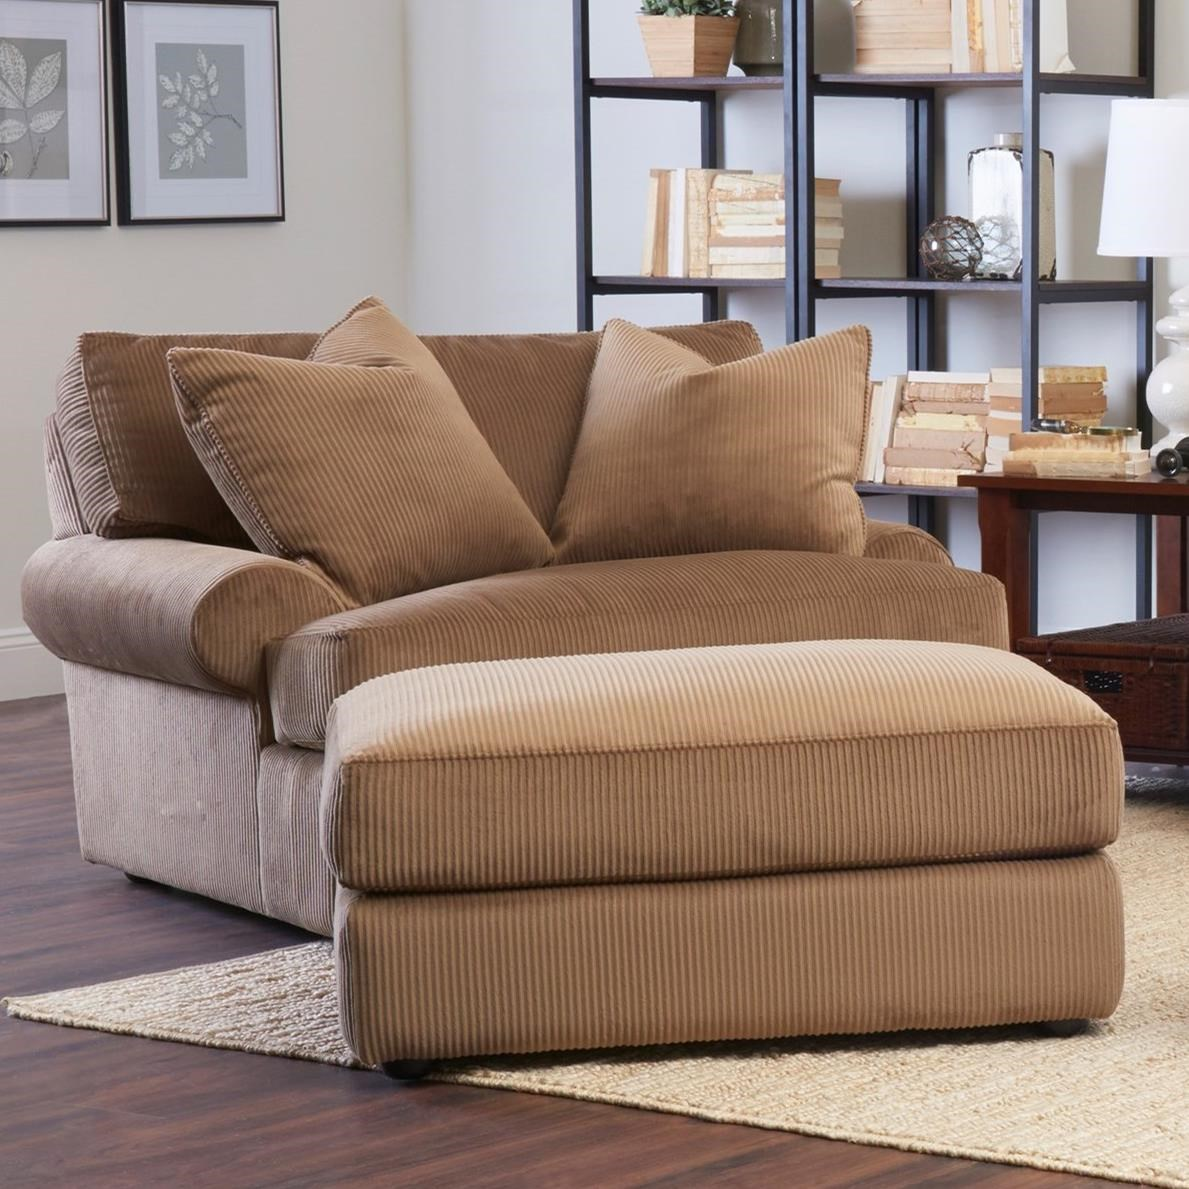 Klaussner Adelyn Oversized Chair And Ottoman Set Johnny